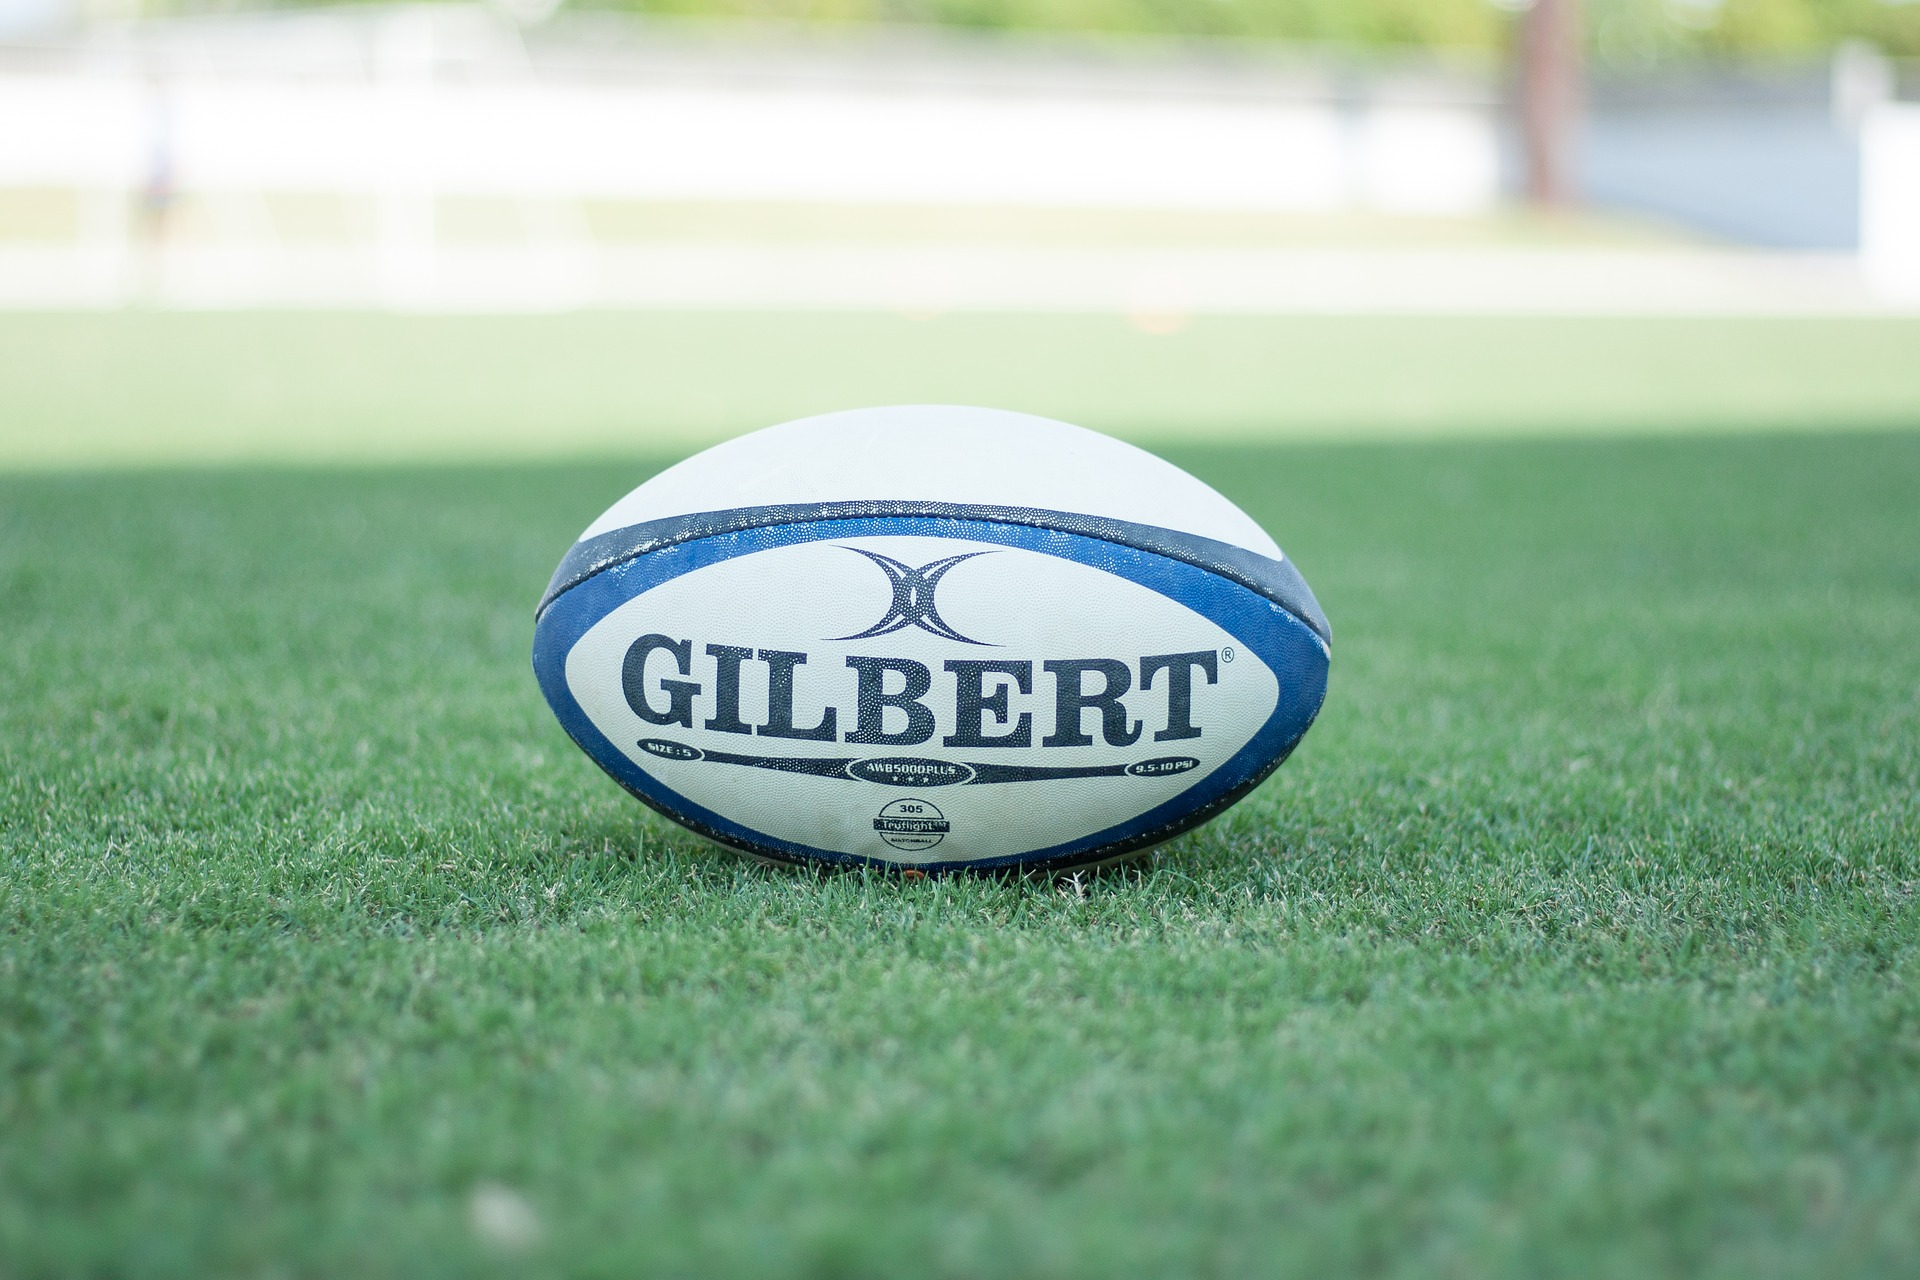 New Zealand's North vs. South postponed due to COVID restrictions